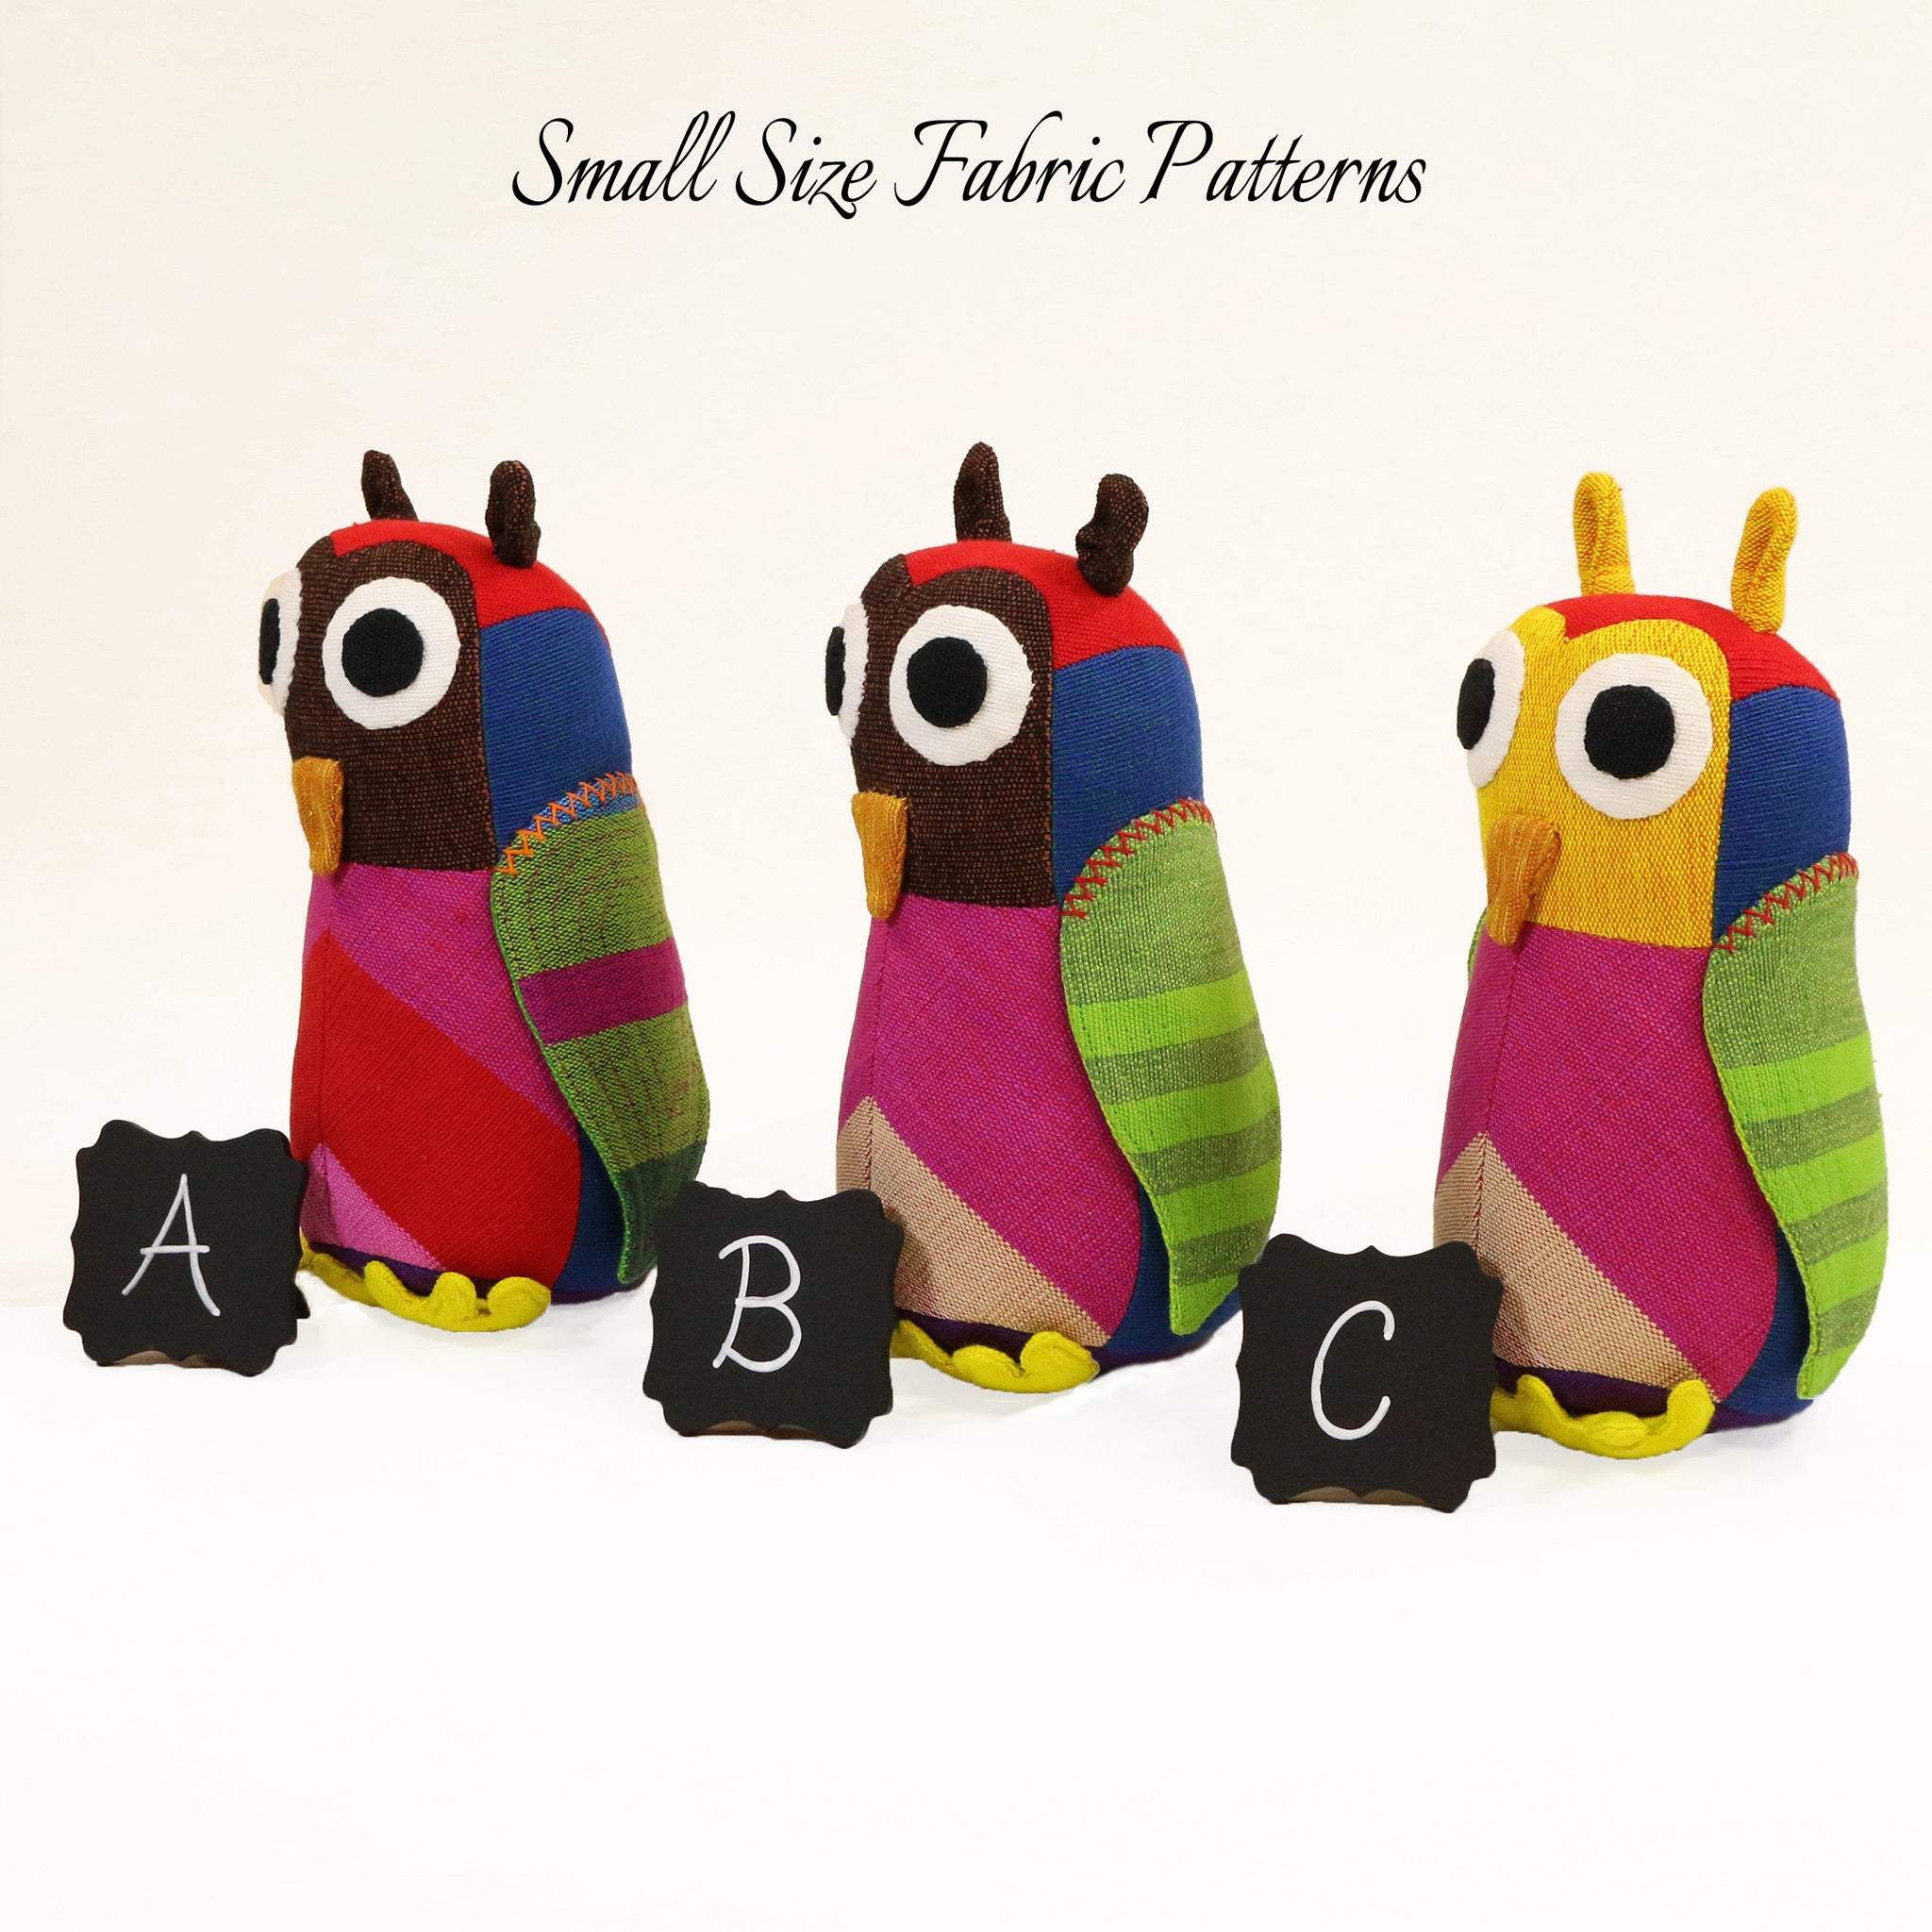 Hazel, the Owl – all small size fabric patterns shown